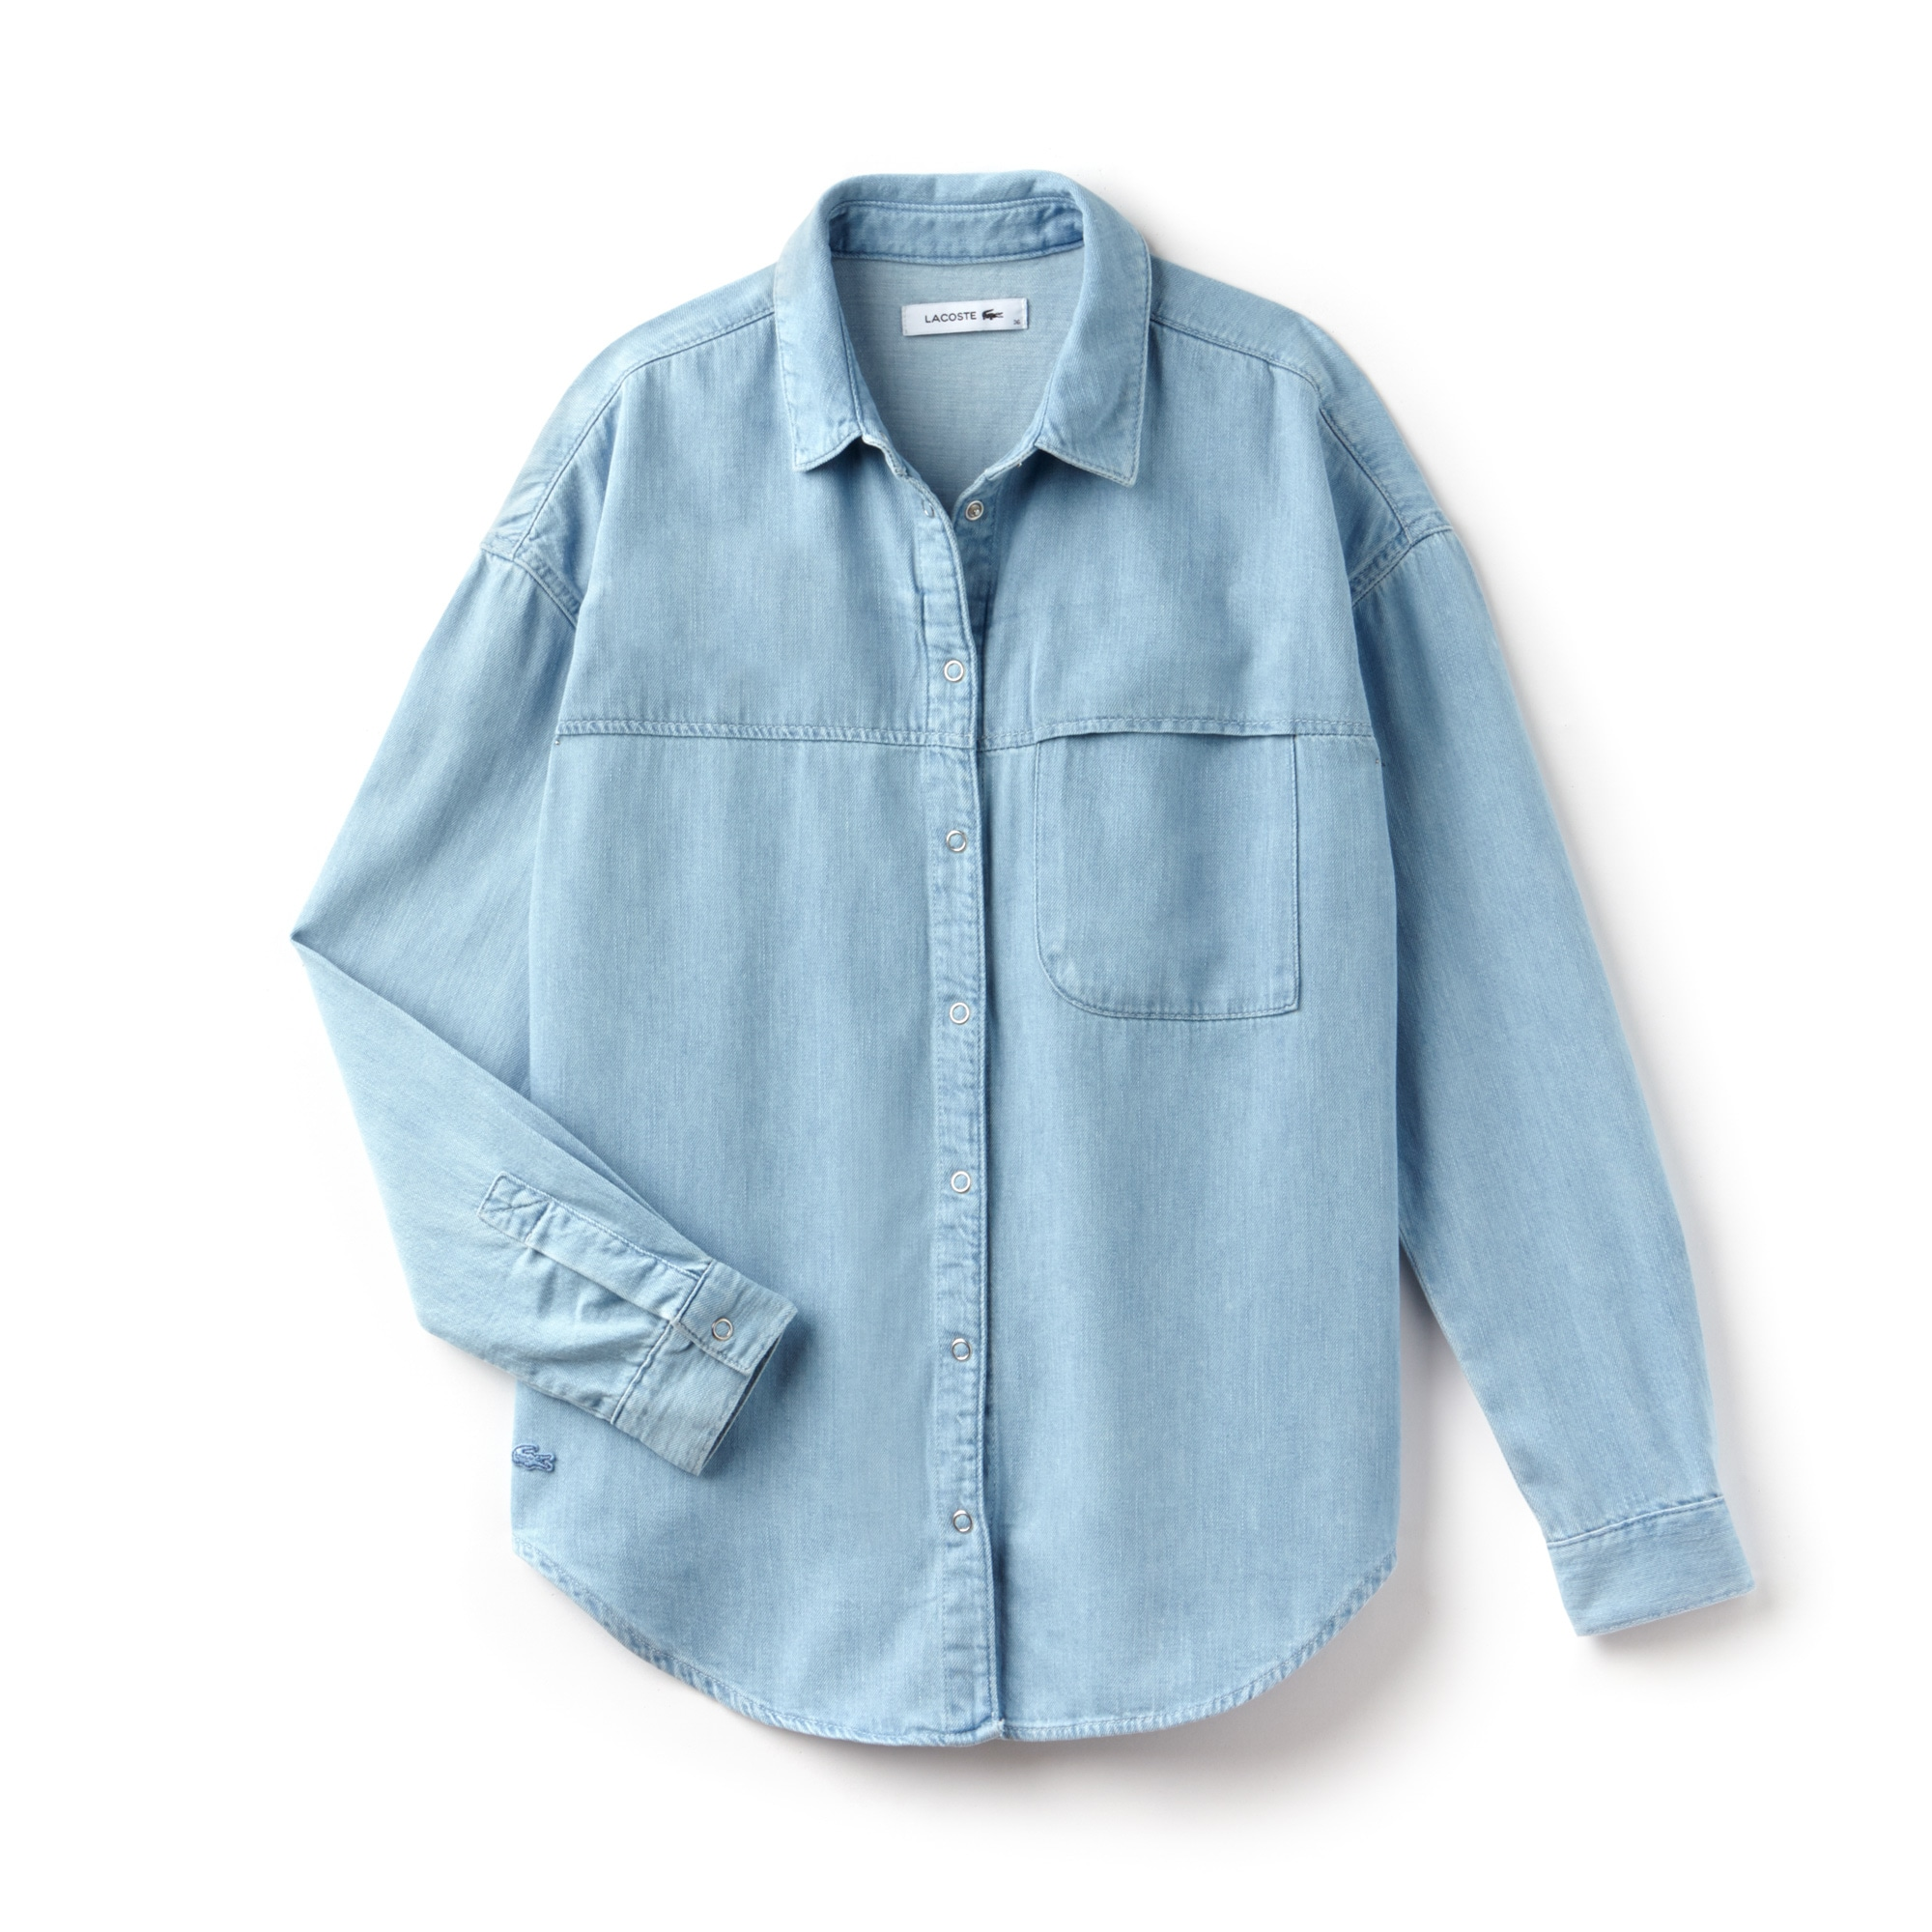 Women's Regular Fit Cotton Denim Shirt